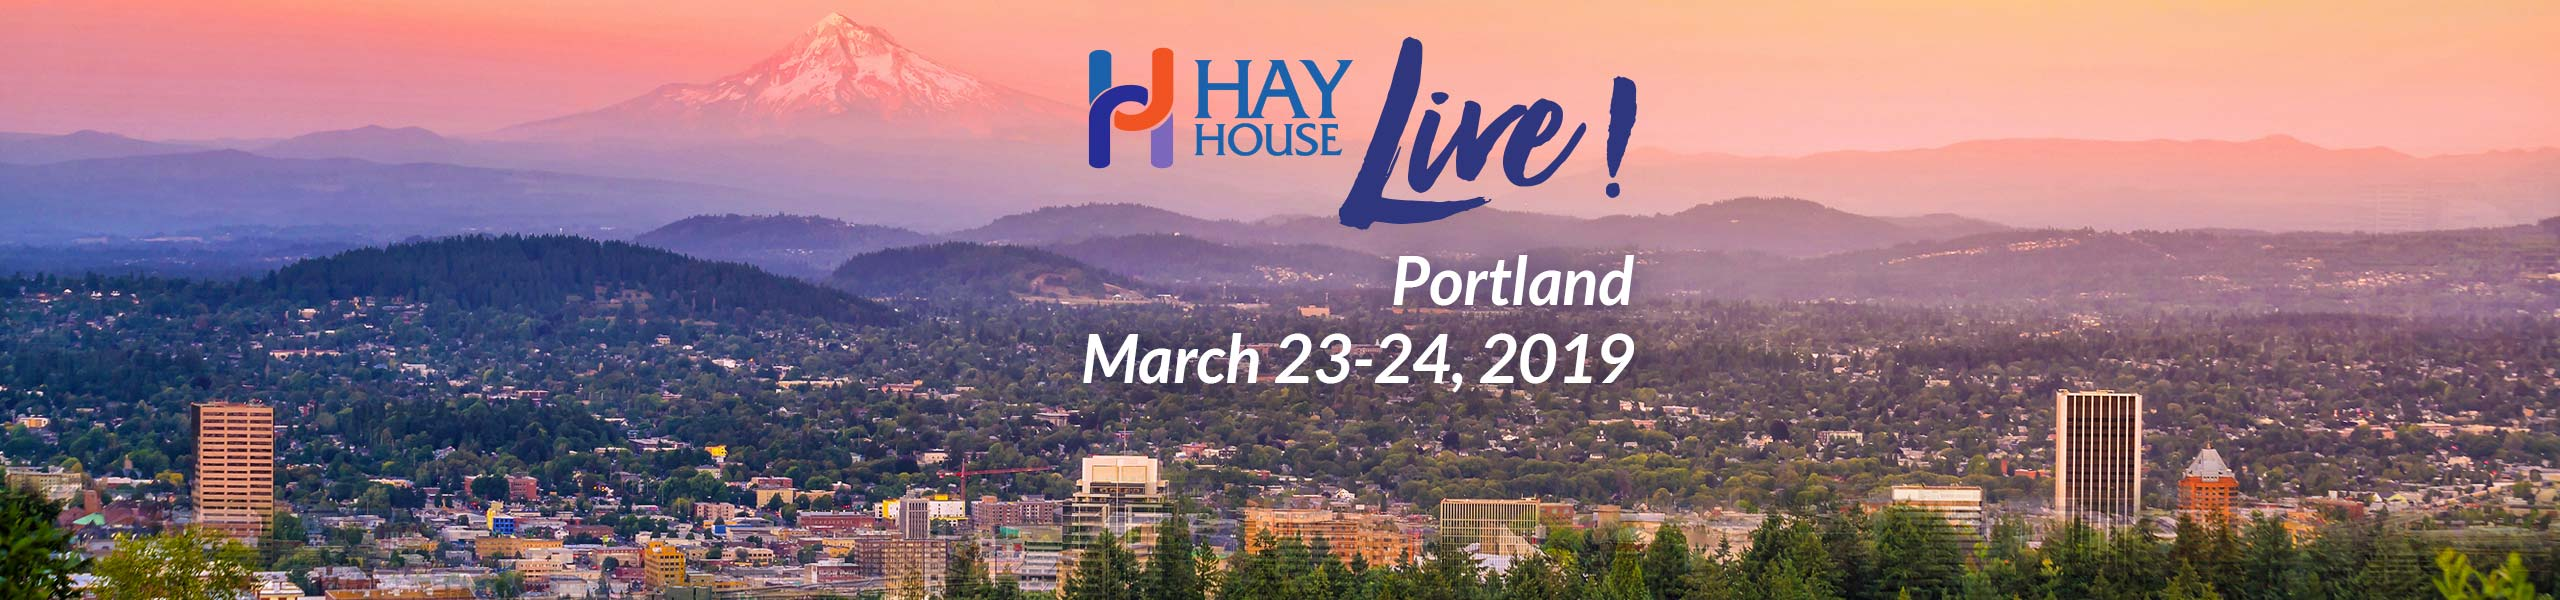 Hay House Live! Portland 2019 - Brian Weiss M.D. and Amy Weiss